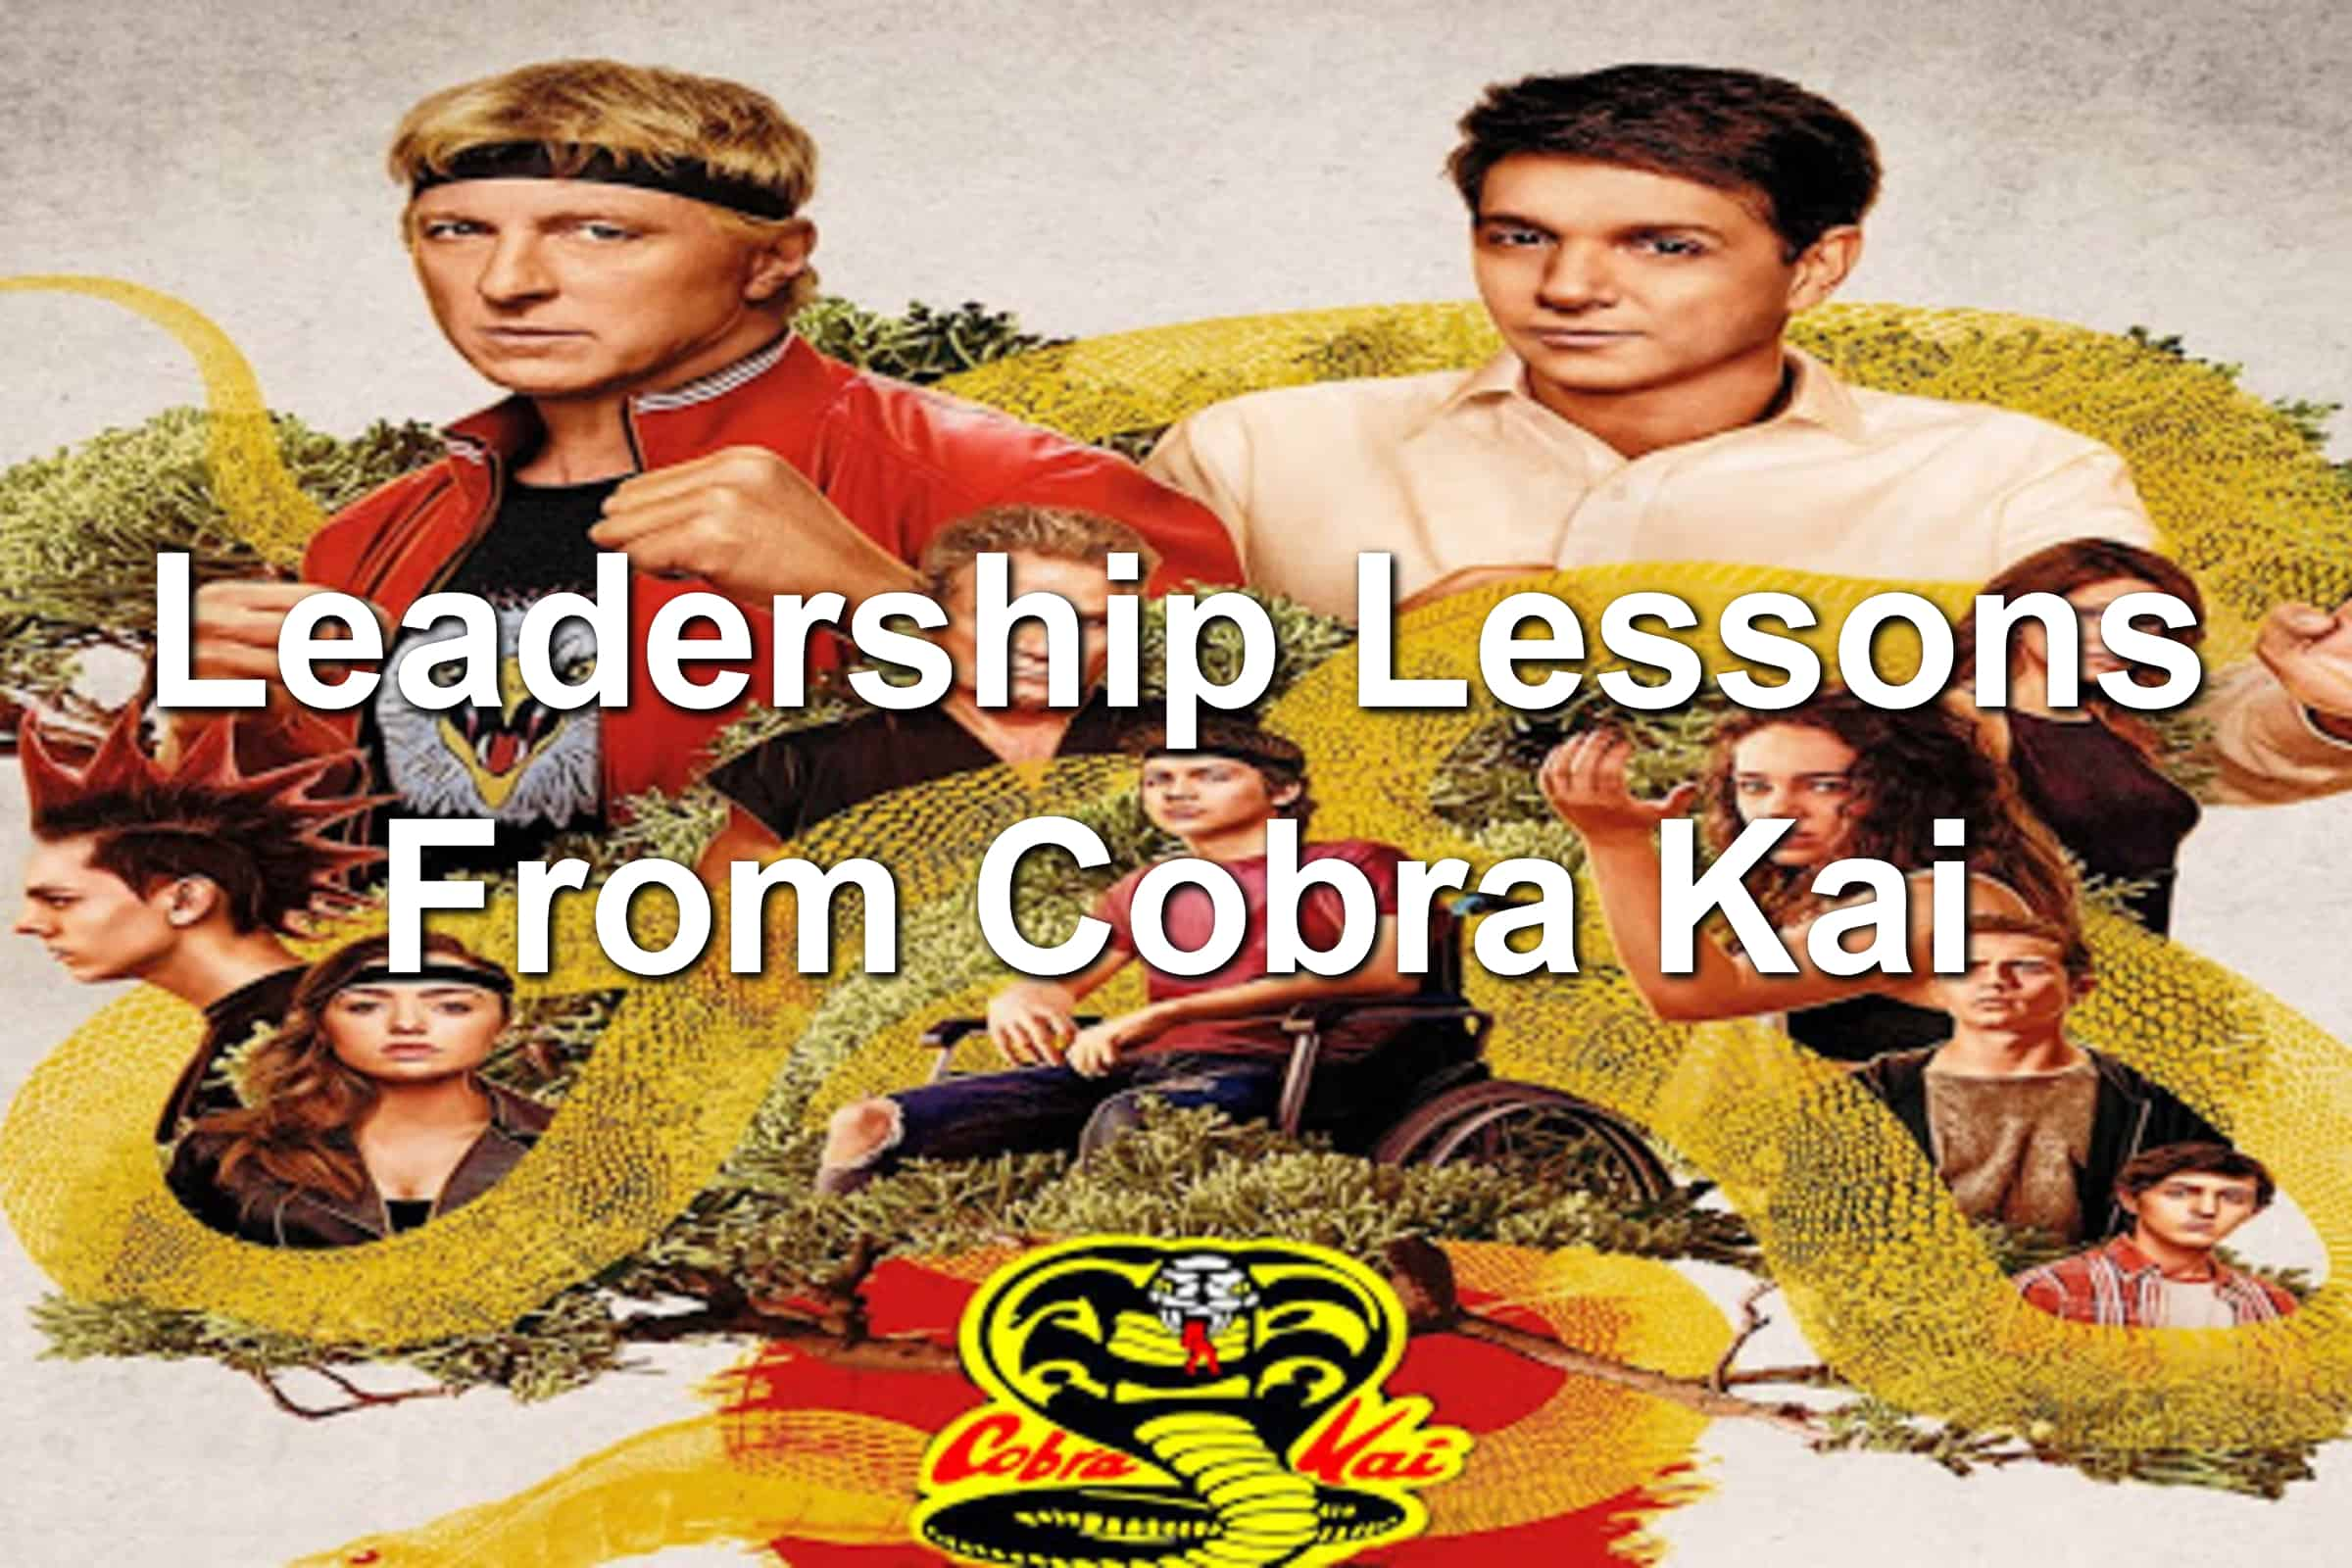 Collage of pictures from Cobra Kai TV series